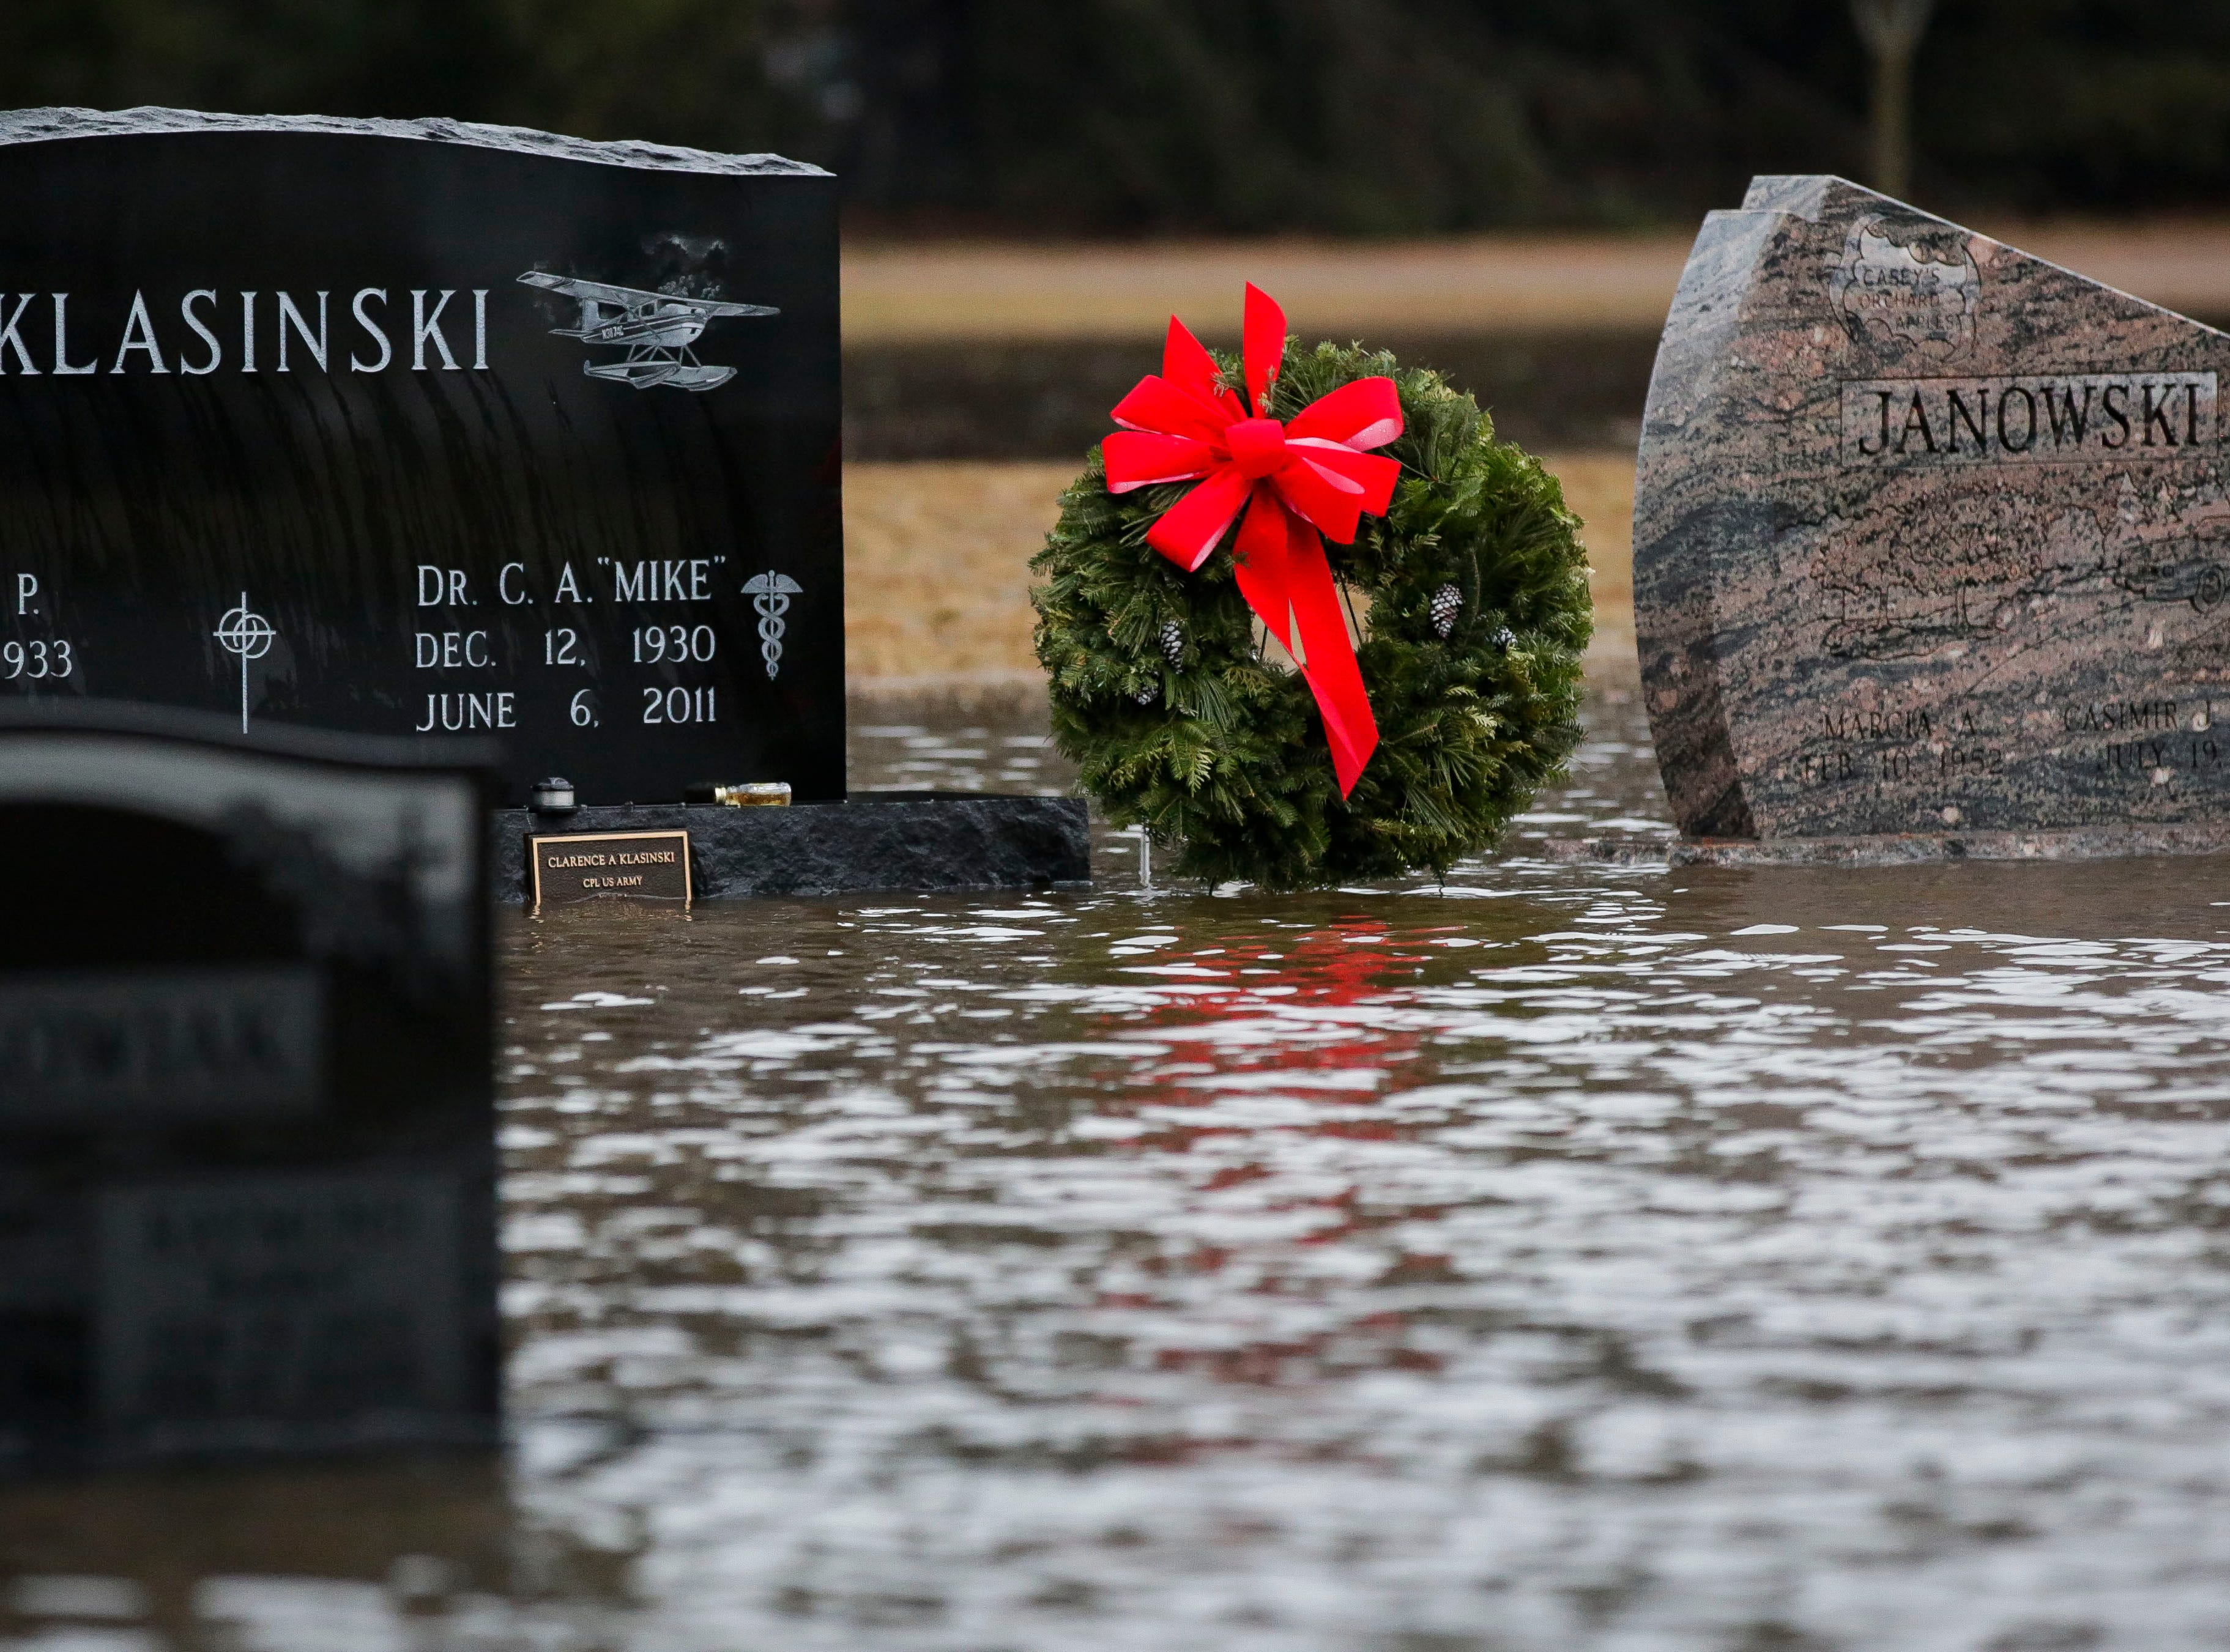 A wreath lays among headstones and flood waters  on Monday, January 7, 2019, at Guardian Angel Cemetery in Stevens Point, Wis. Tork Mason/USA TODAY NETWORK-Wisconsin